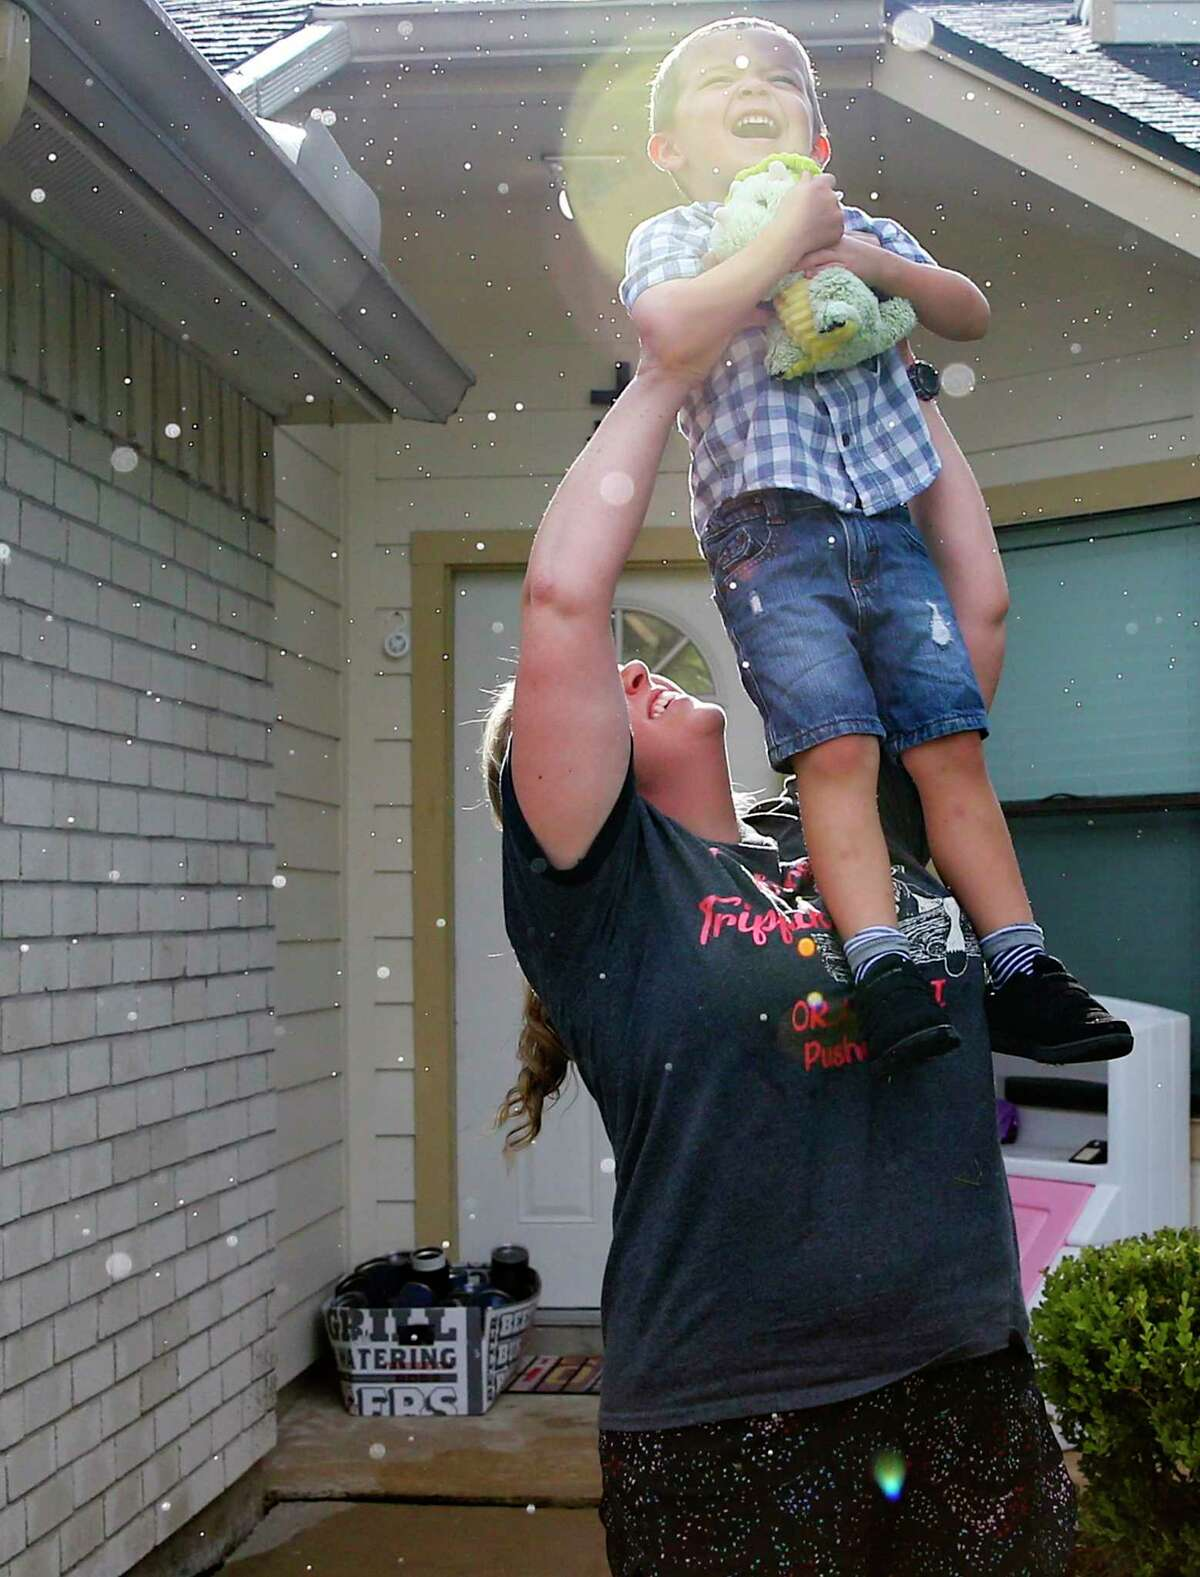 Janet Clements lifts up her son, Jackson, 4, so he can get a better look at a rainbow in front of their Katy, Texas, home on Friday, Aug. 30, 2019 in Katy. The family was flooded out of their last home from Harvey.